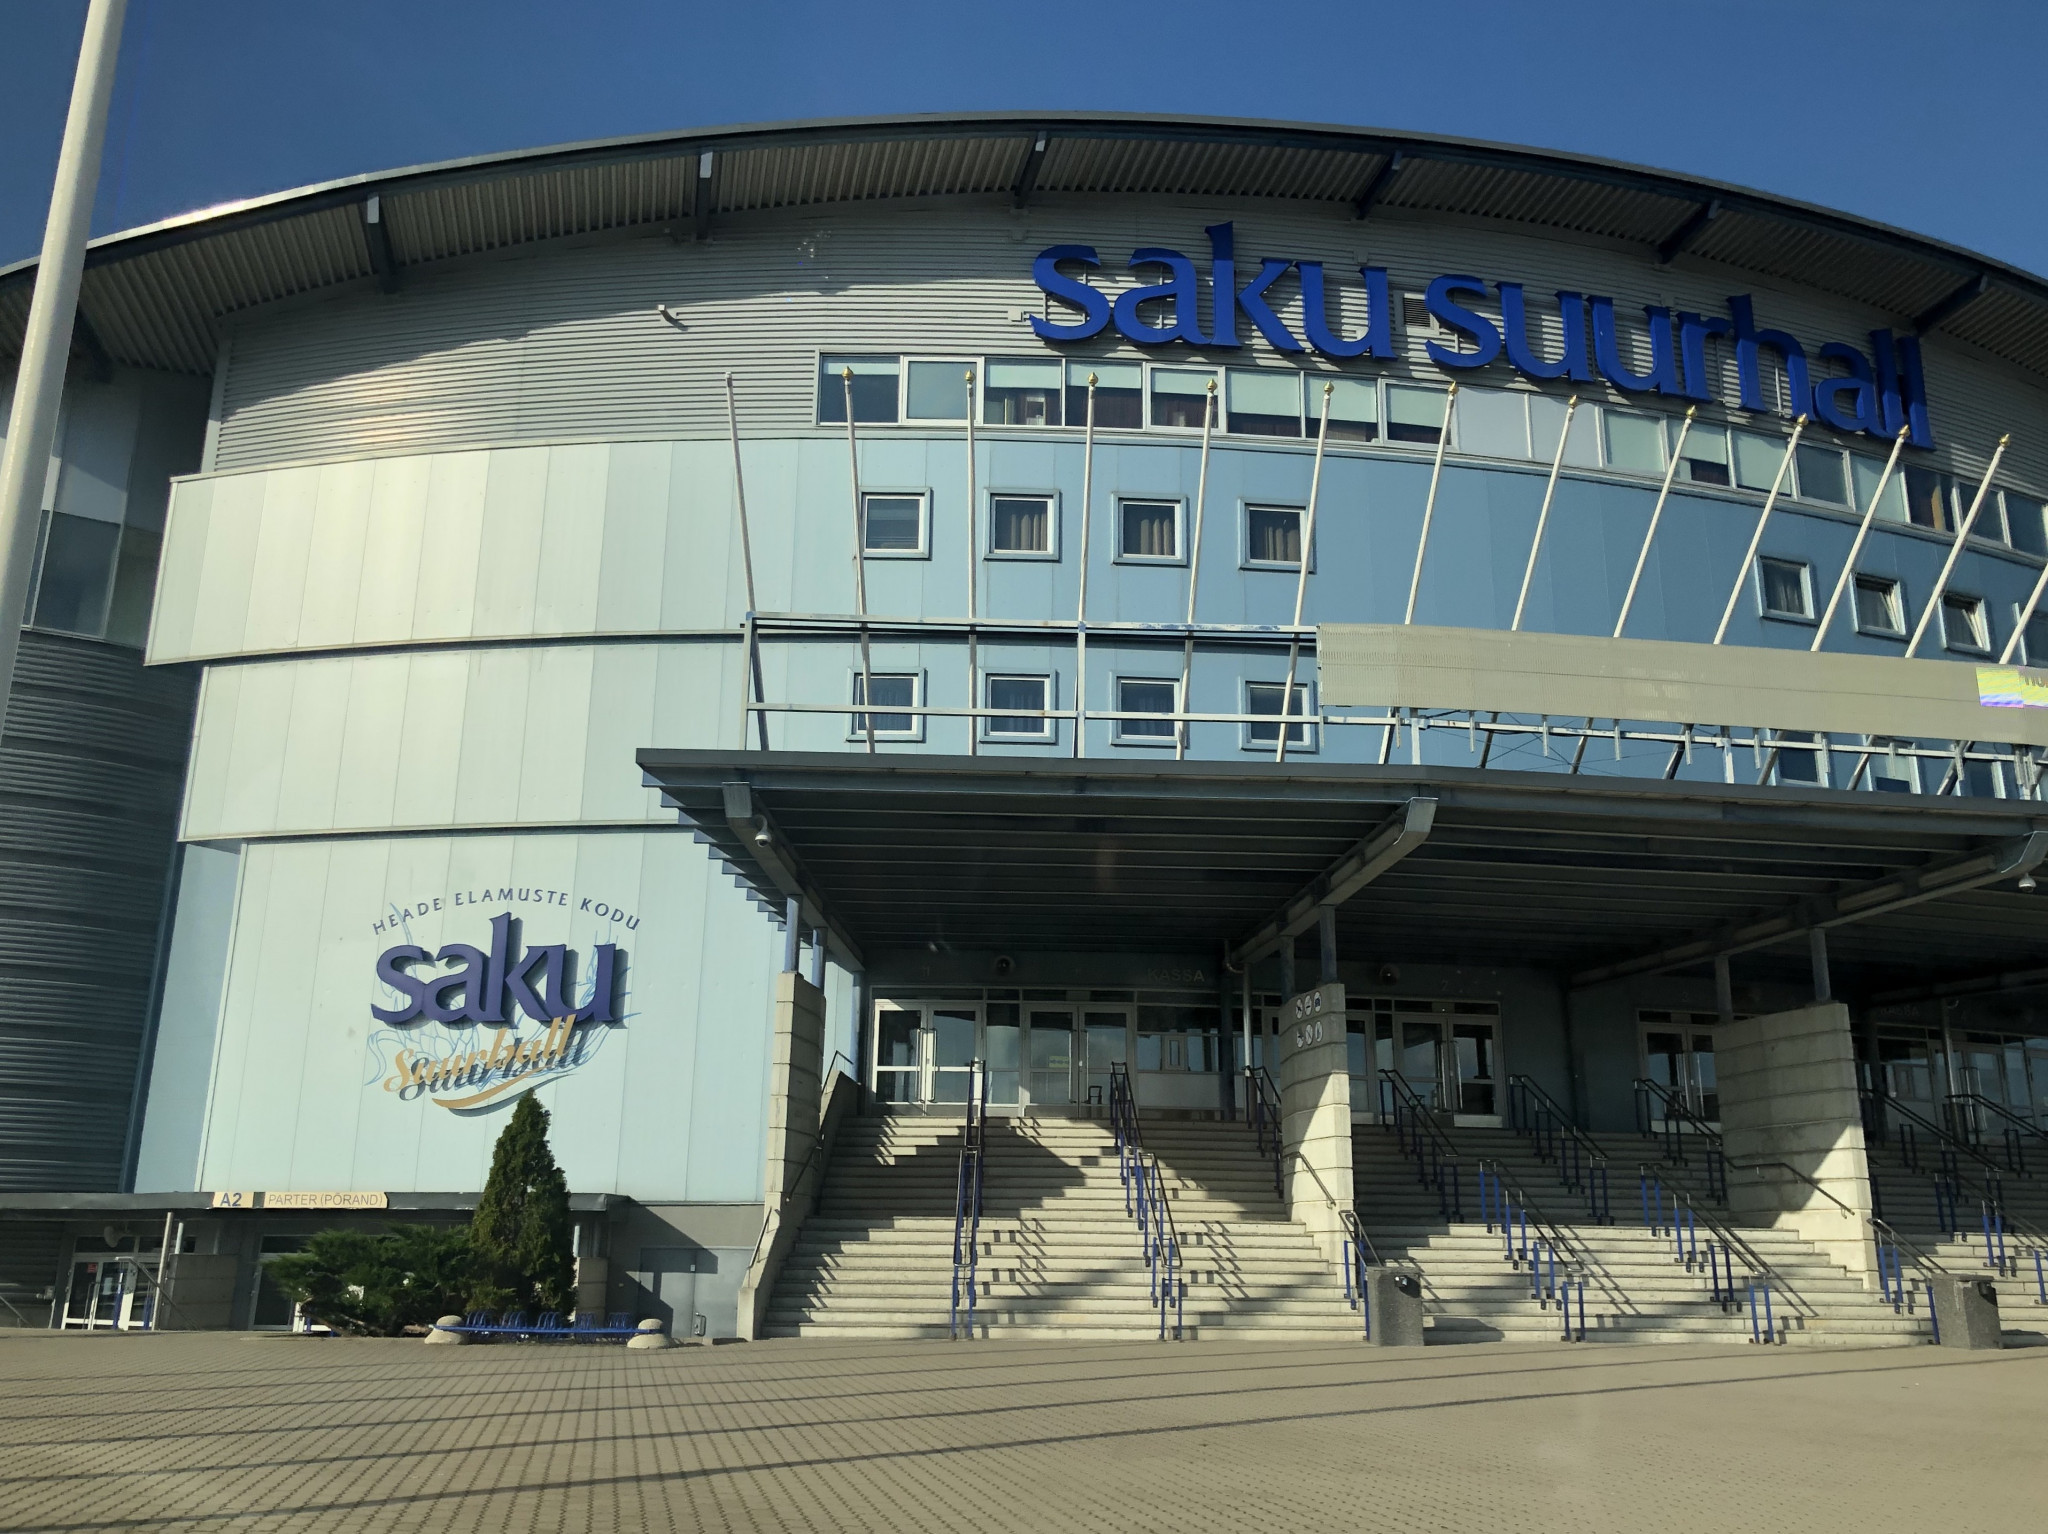 Competition will be held at Saku Suurhall next year ©WTE